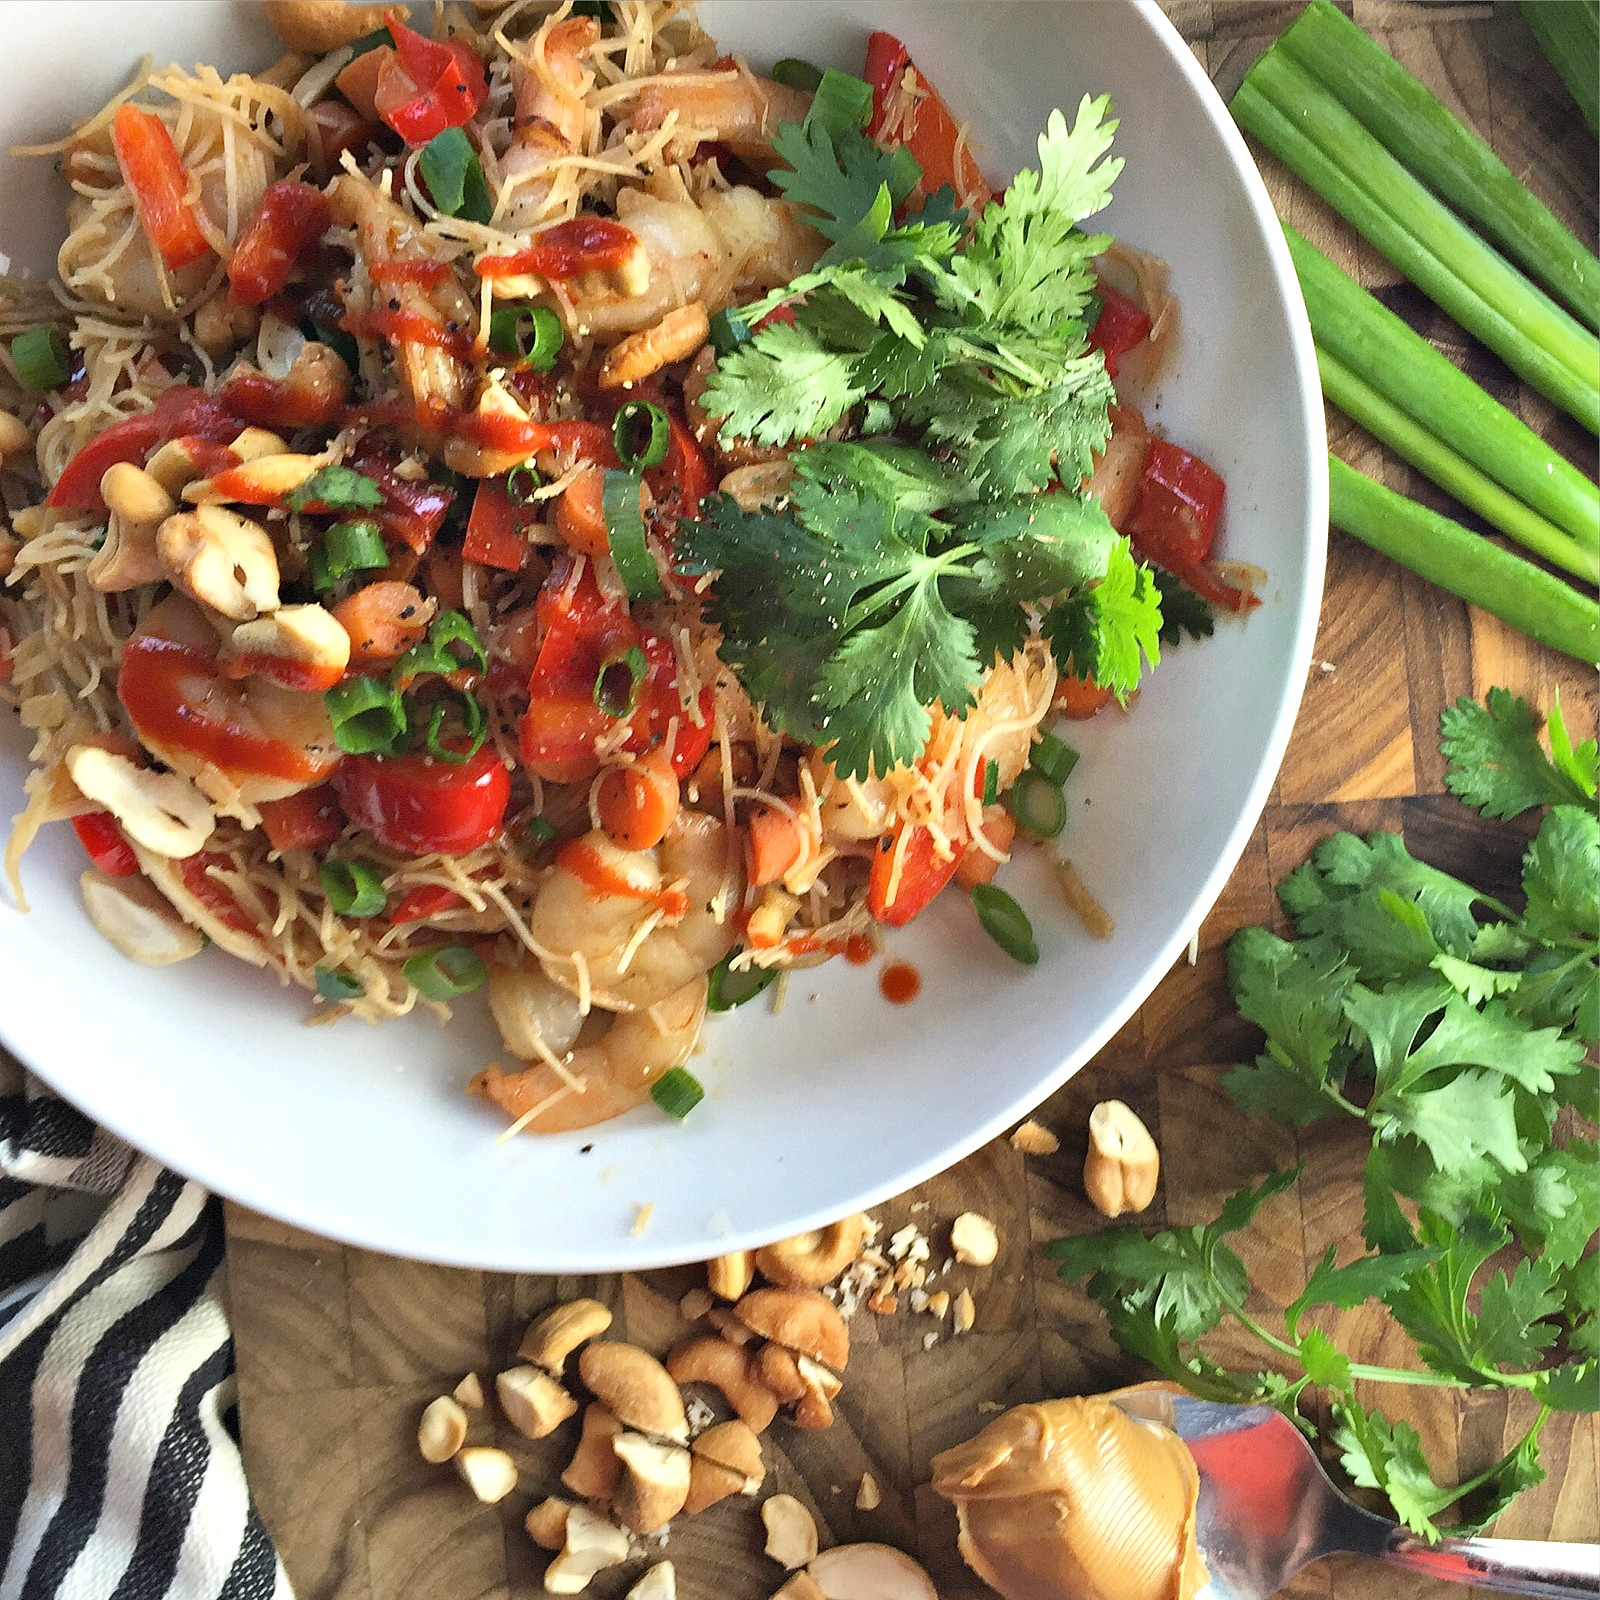 20-Minute Shrimp Brown Rice Noodle Bowls with Peanut Sauce